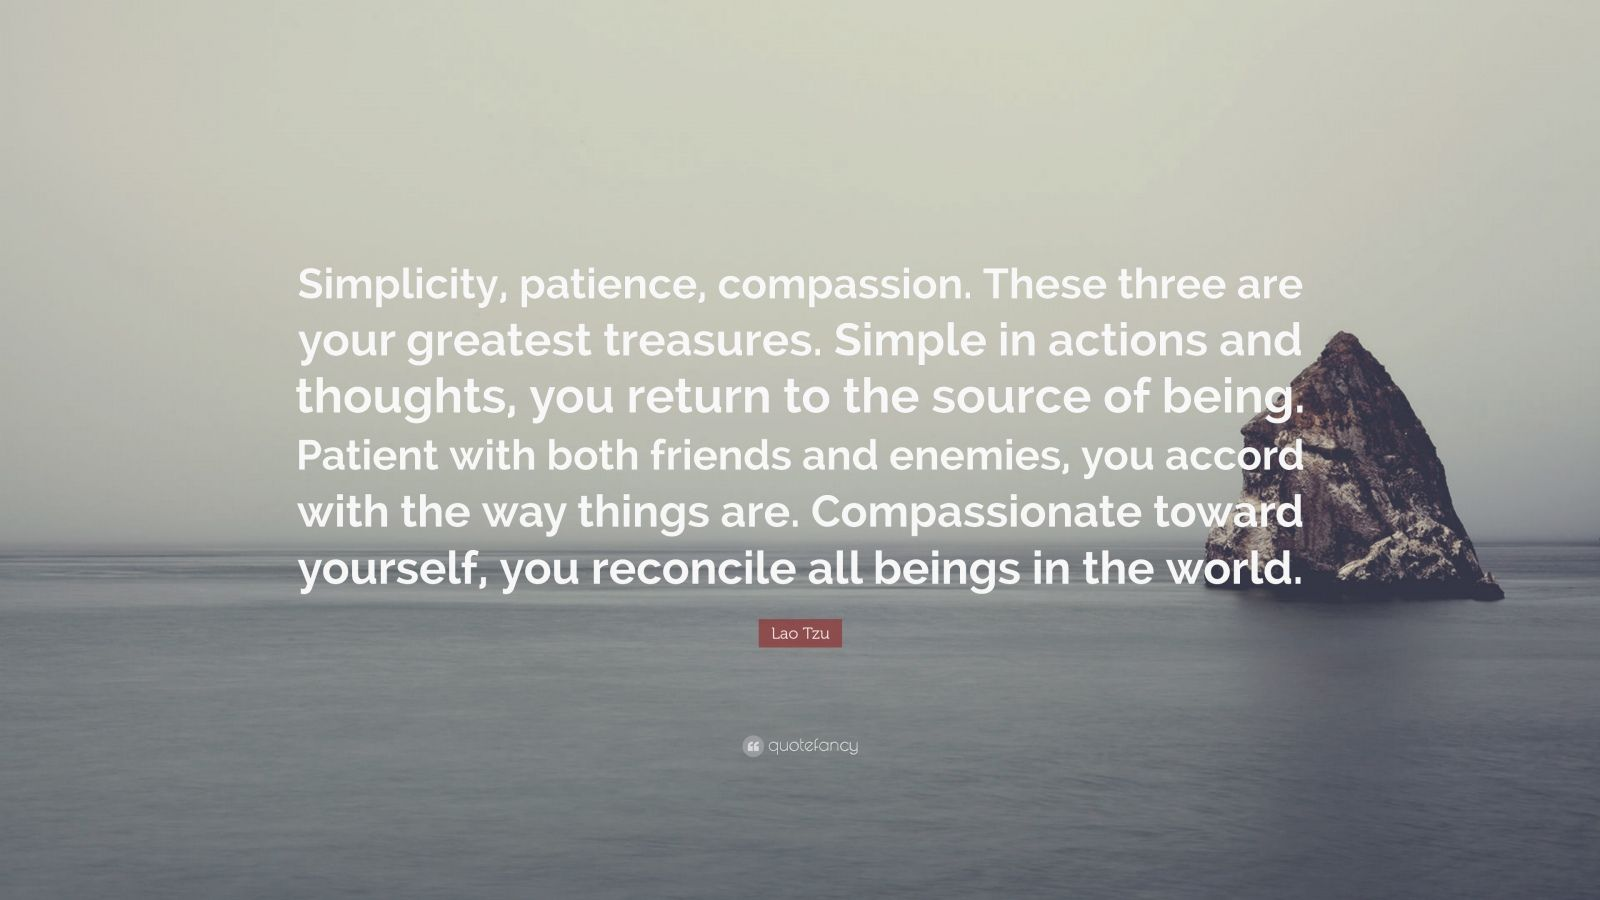 """Lao Tzu Quote: """"Simplicity, patience, compassion. These three are your greatest treasures. Simple in actions and thoughts, you return to the source of being. Patient with both friends and enemies, you accord with the way things are. Compassionate toward yourself, you reconcile all beings in the world."""""""